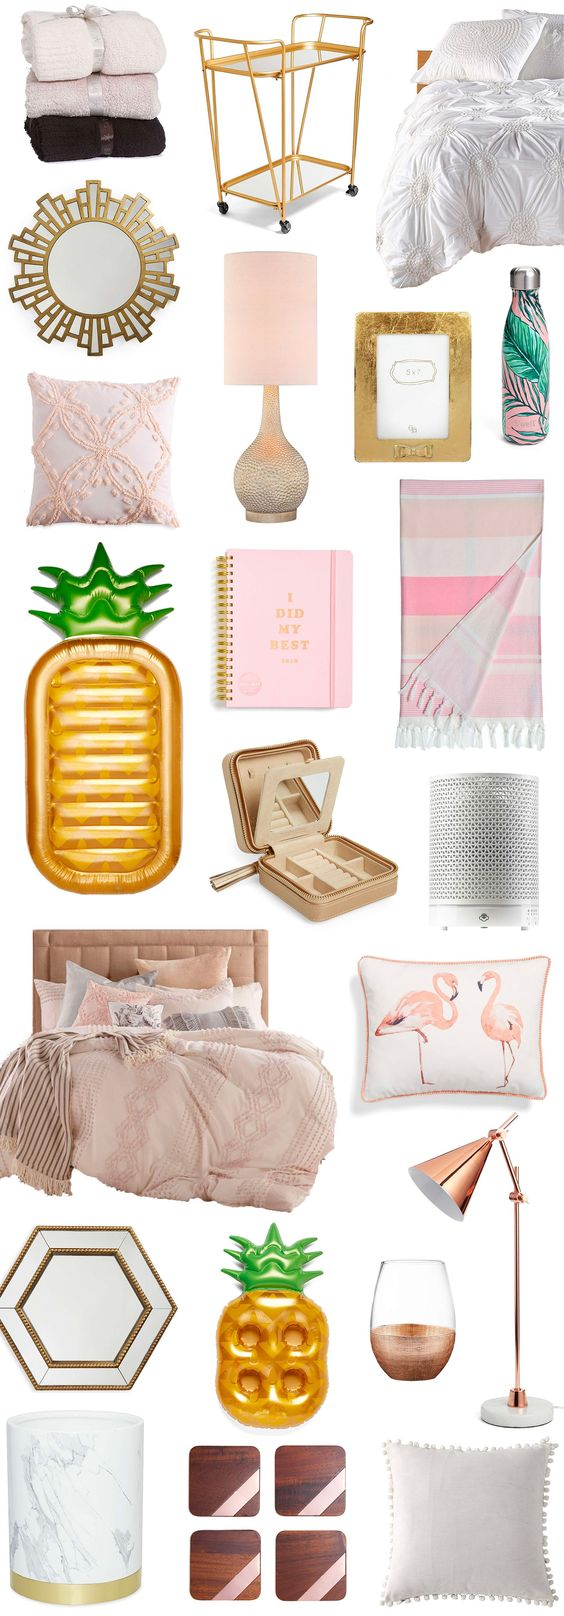 Affordable home decor finds that you will LOVE. P.S. All of these feminine home decor items are currently on sale in the Nordstrom Anniversary Sale for crazy low prices. To see the best home decor deals from the Nordstrom Anniversary Sale, click through this pin from Orlando, Florida lifestyle blogger Ashley Brooke Nicholas! | cute home decor, home decor ideas, pink gold and white home decor, cute bedding, gold bar cart, pink and green palm trees, flamingos, gold mirrors, Nordstrom style